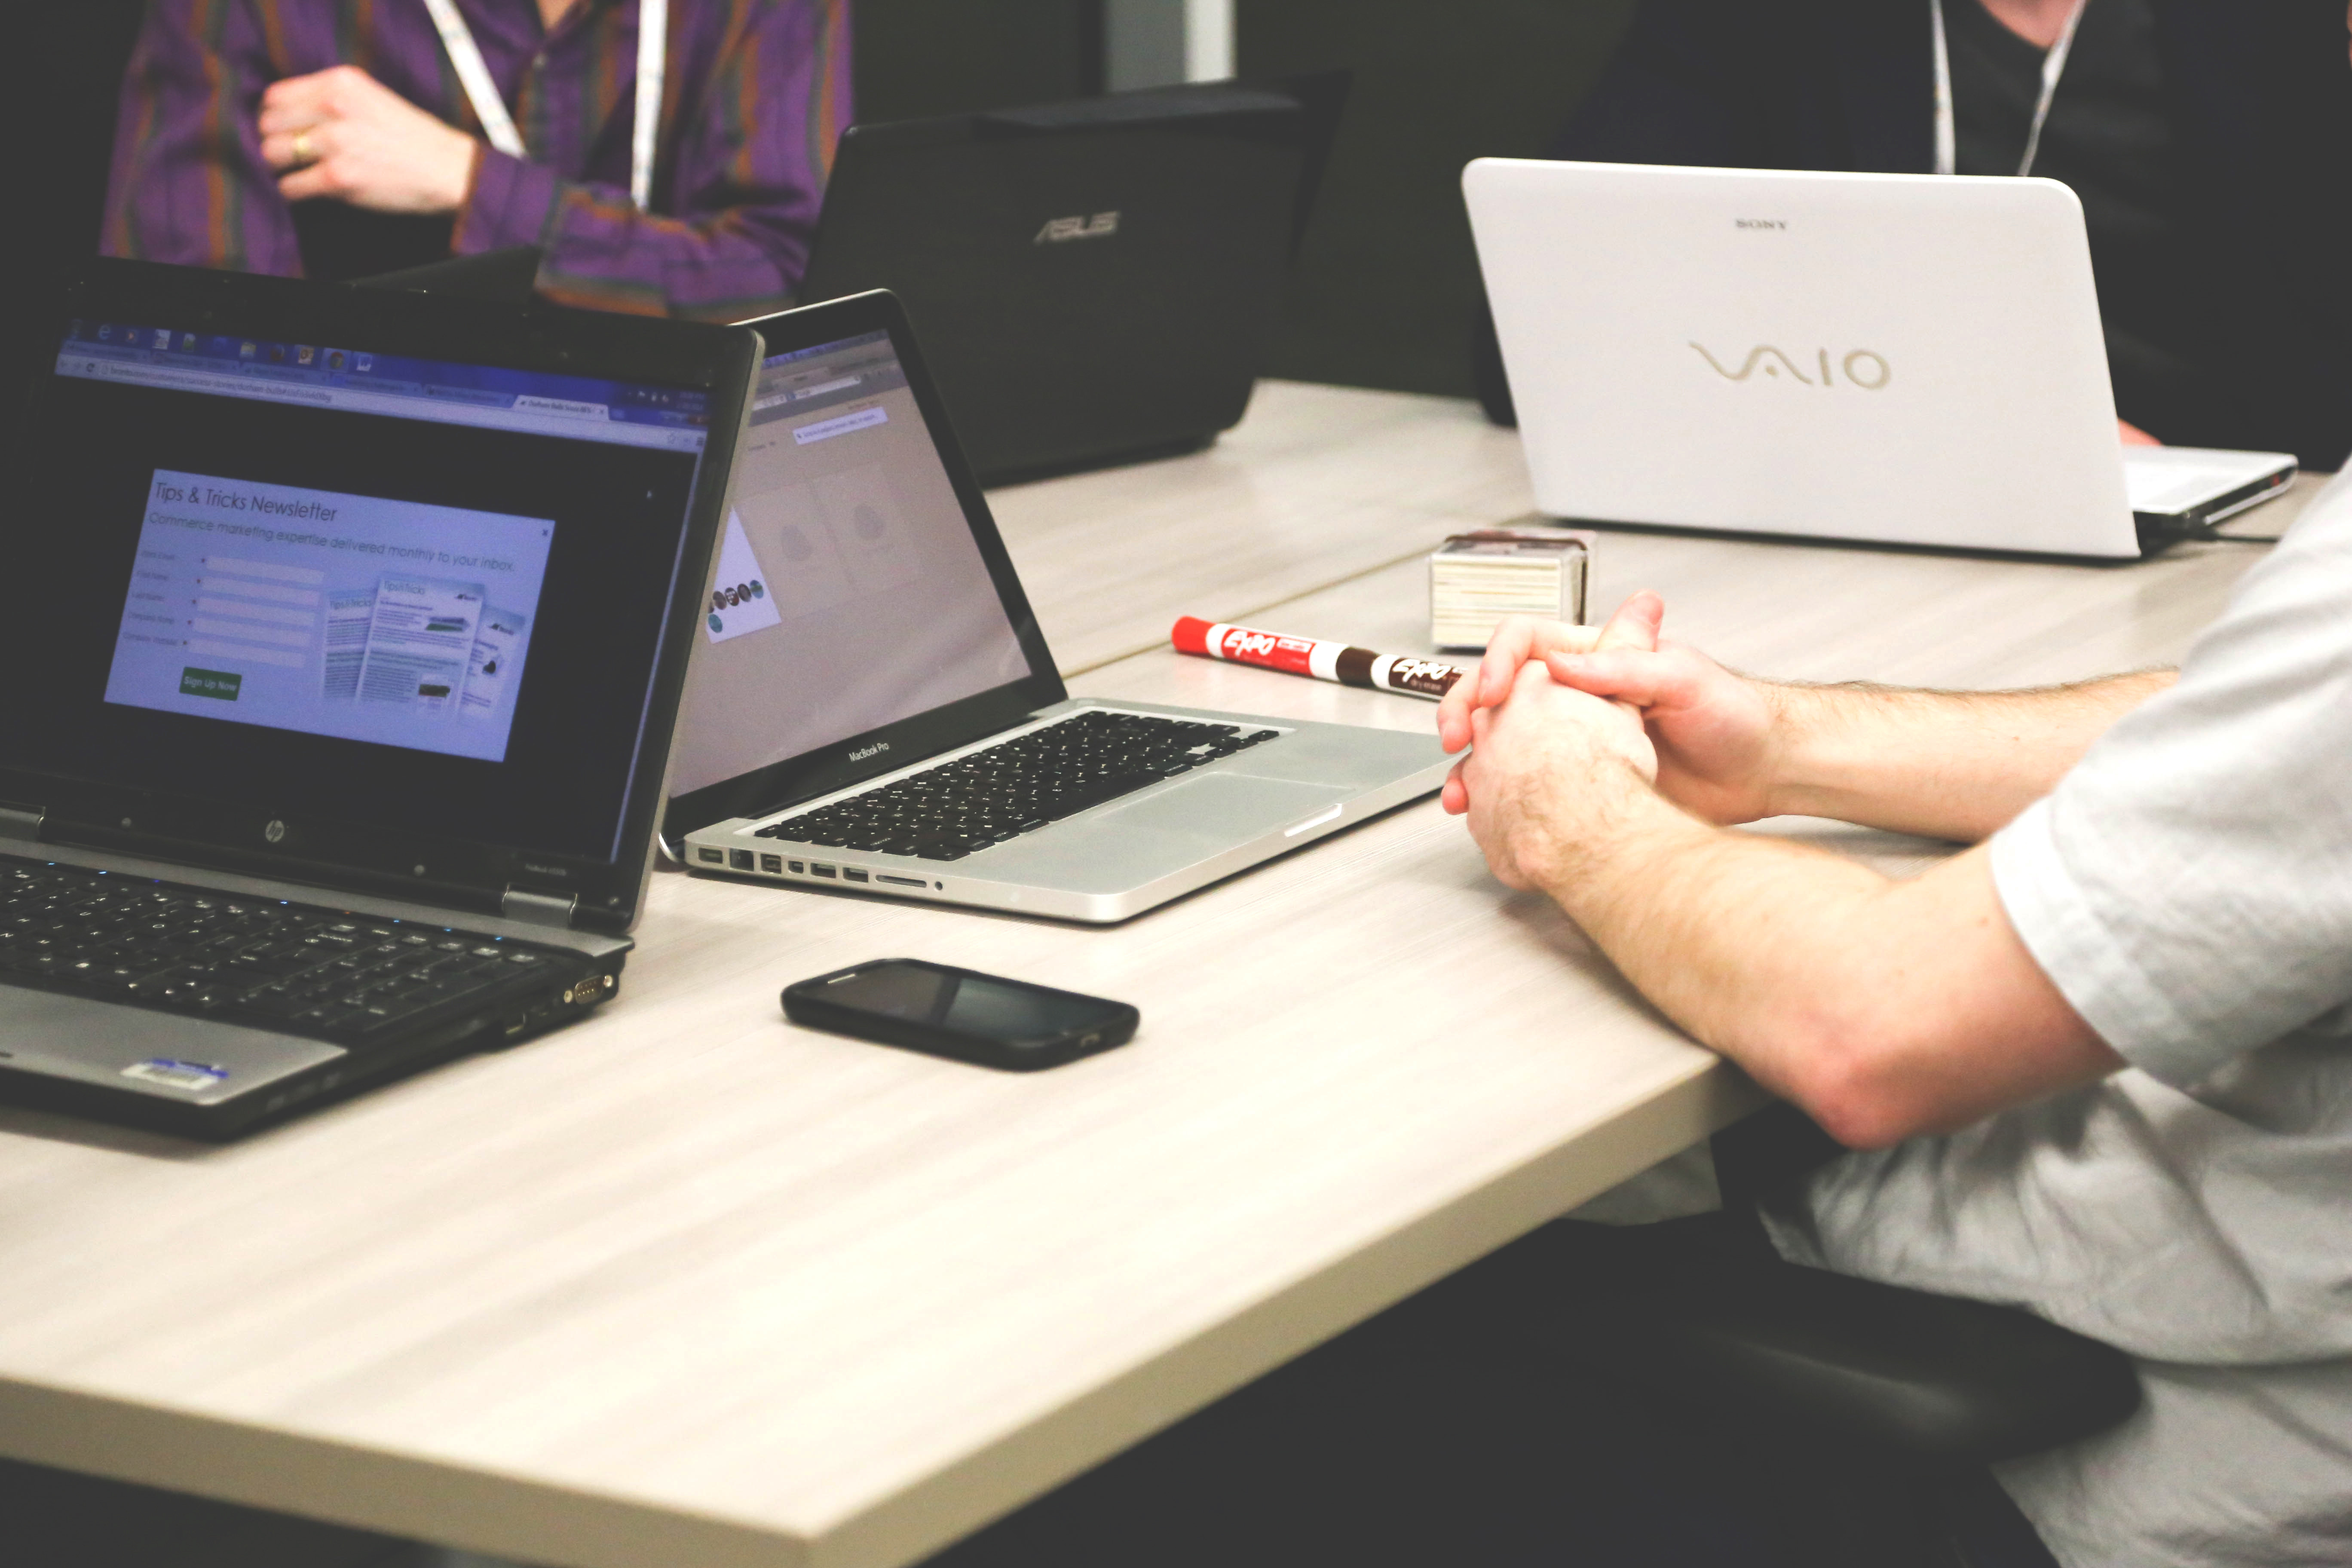 One Month launches 30-day startup bootcamp course and competition